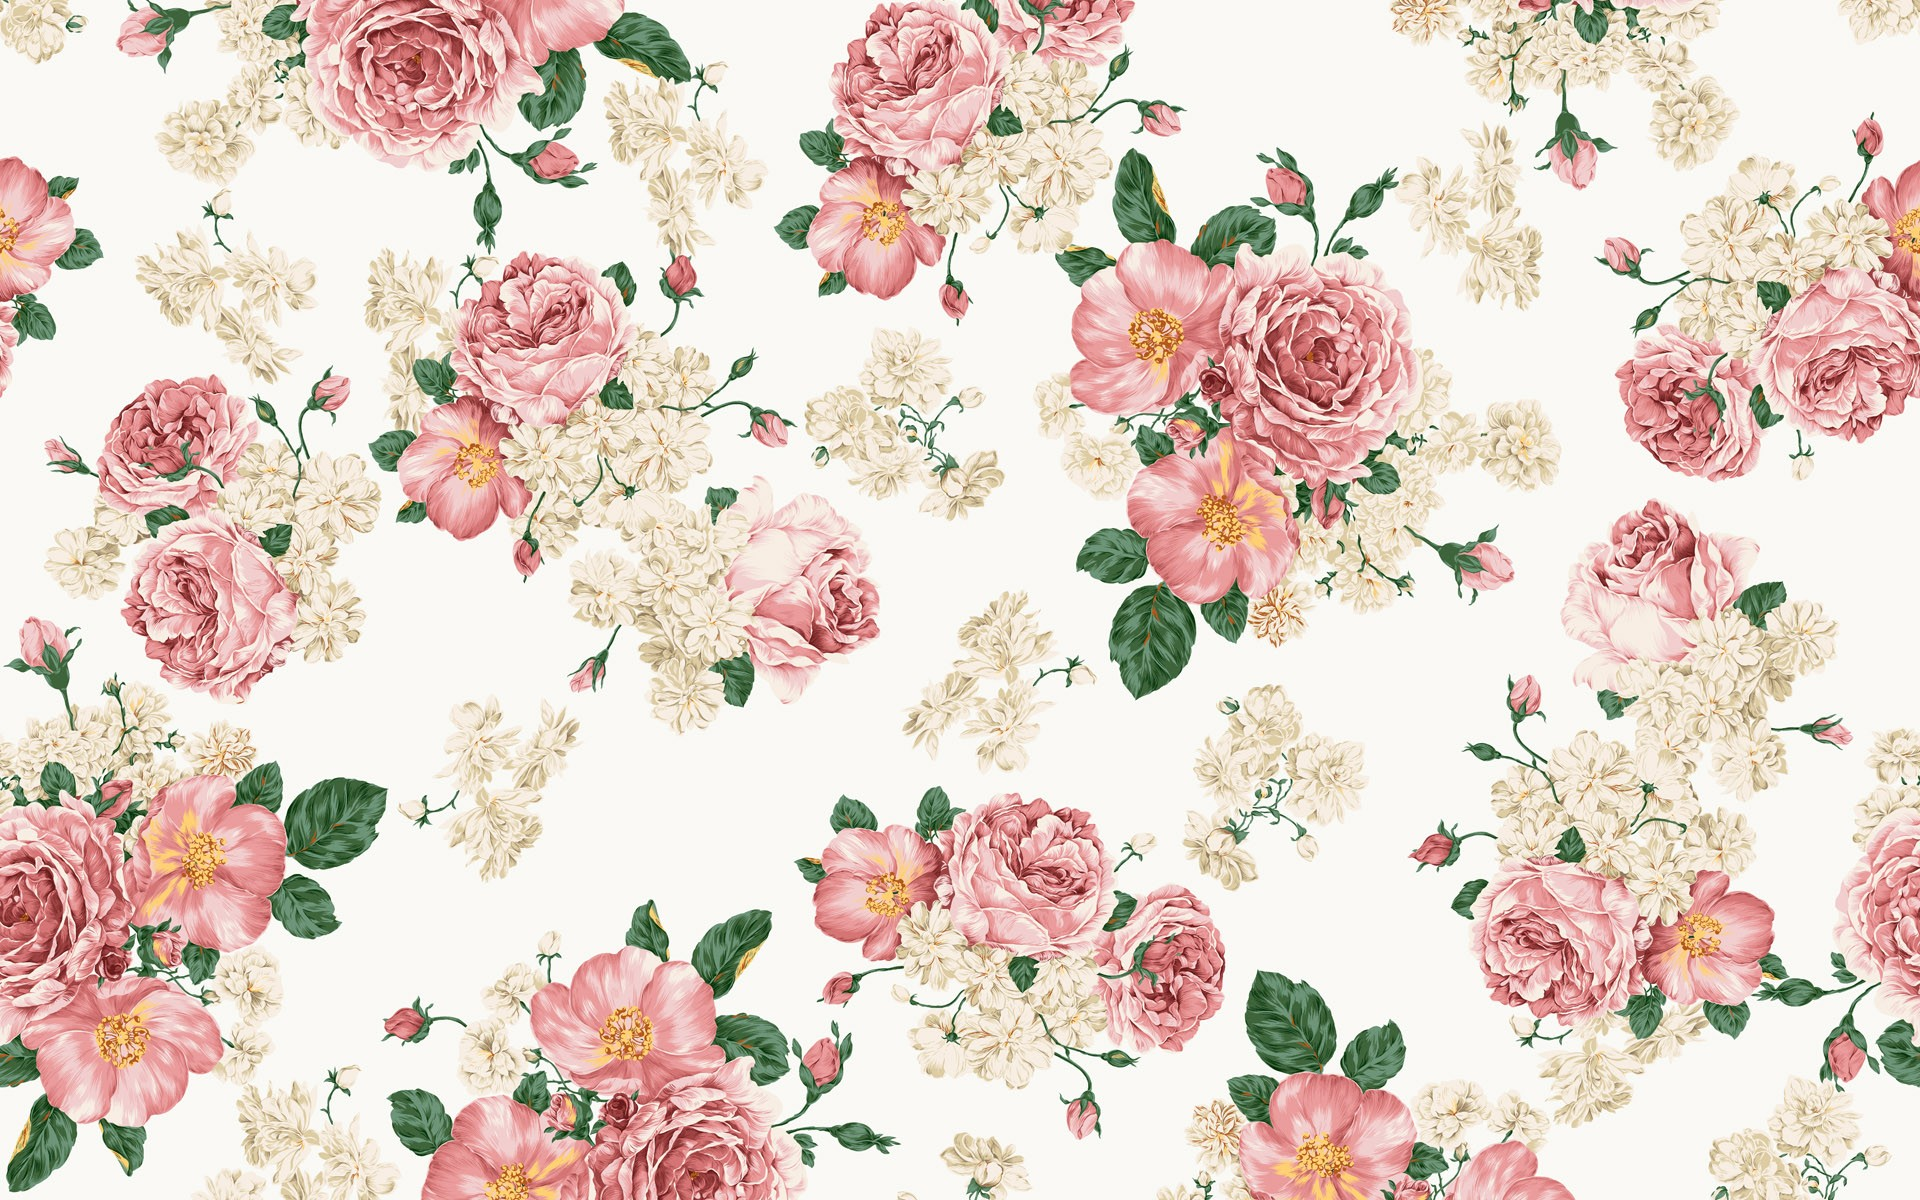 30 floral backgrounds download free amazing full hd wallpapers